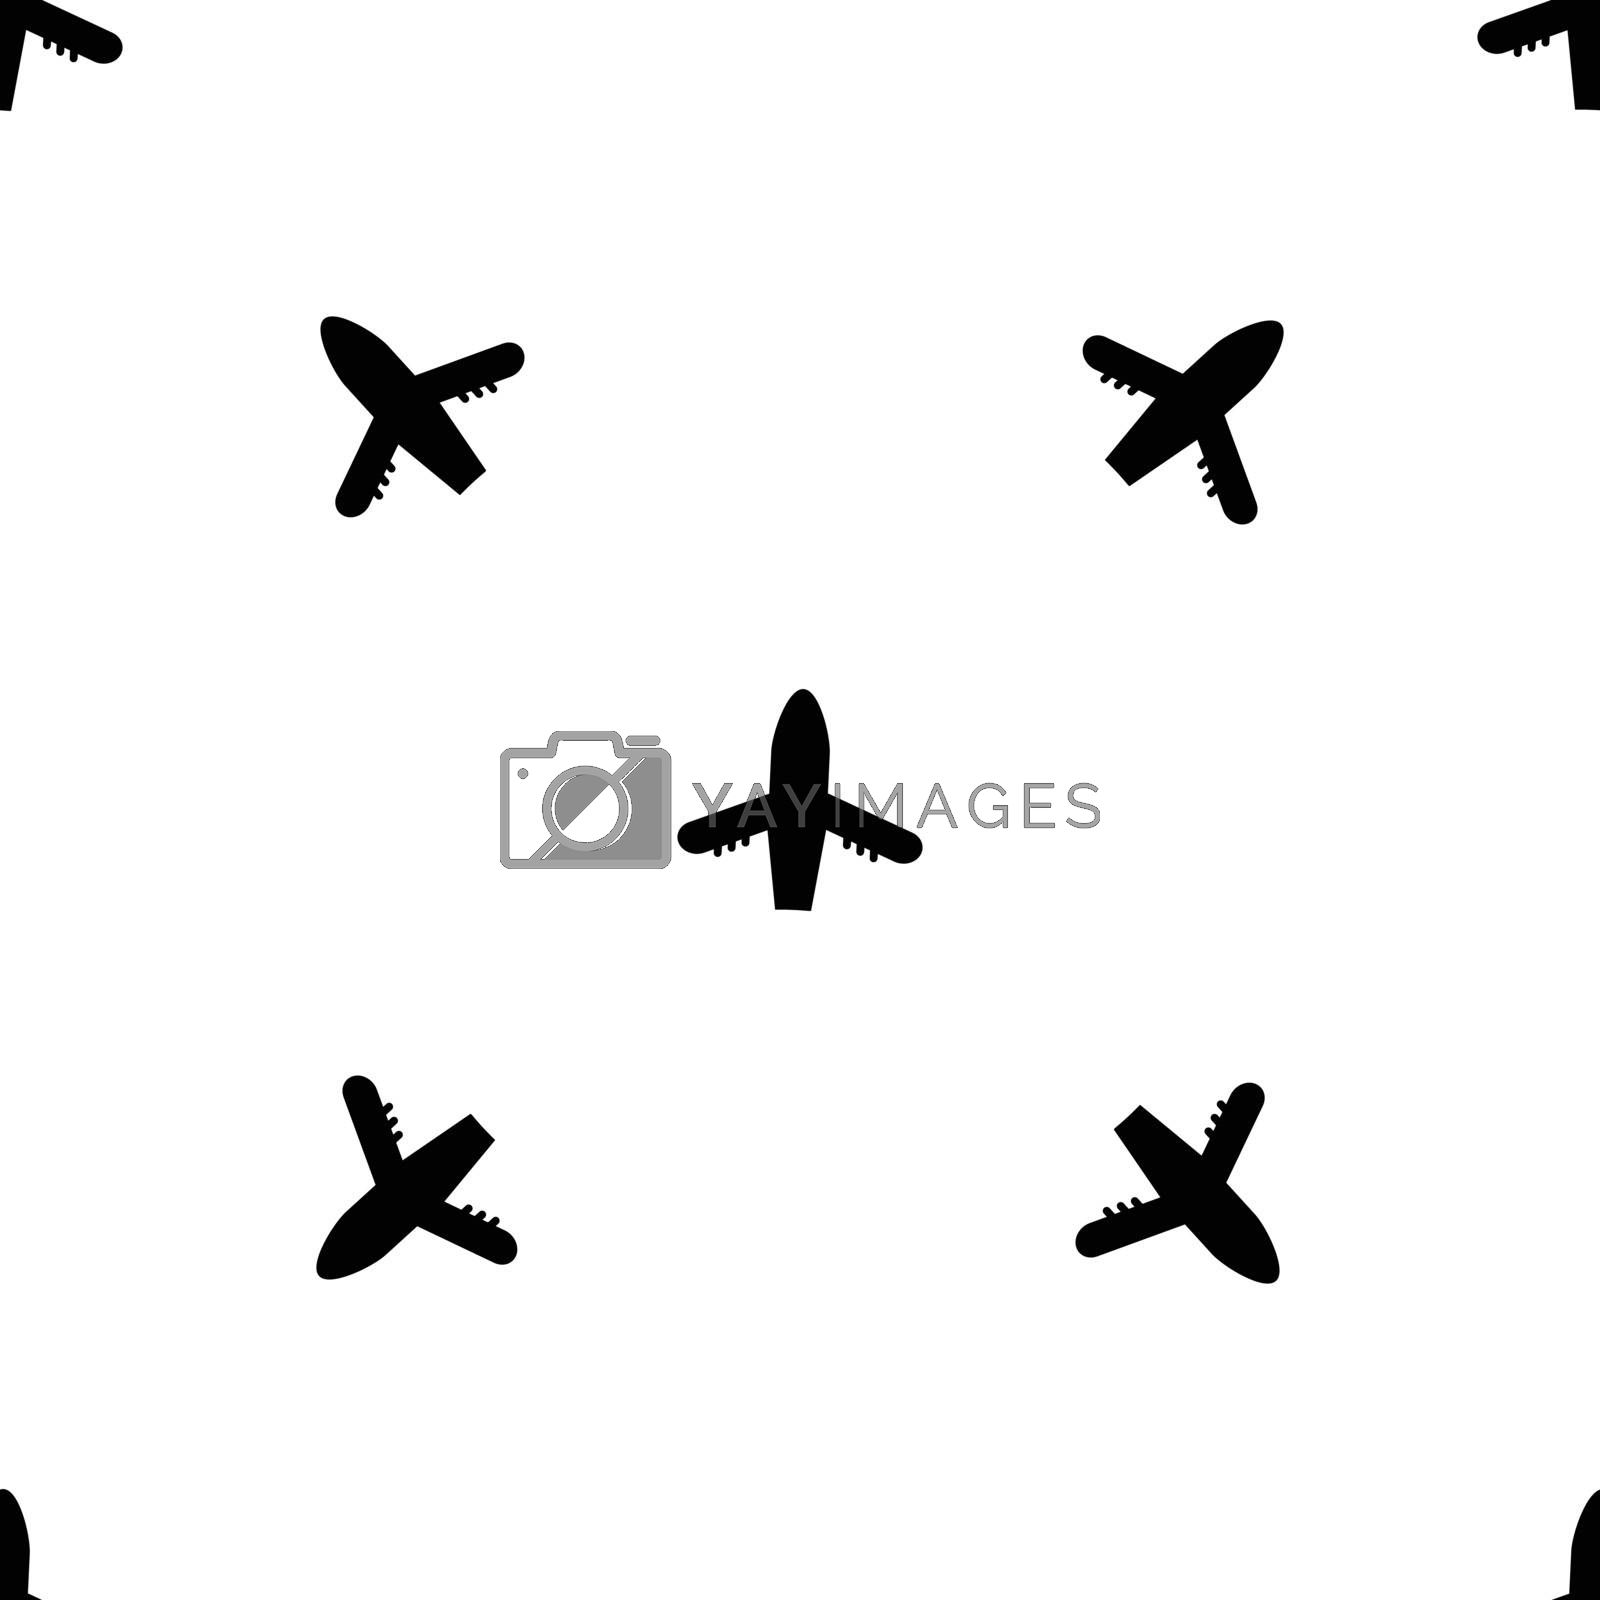 Seamless vector airplane pattern. Flat simple style for any web design or textile. Black and white illustration